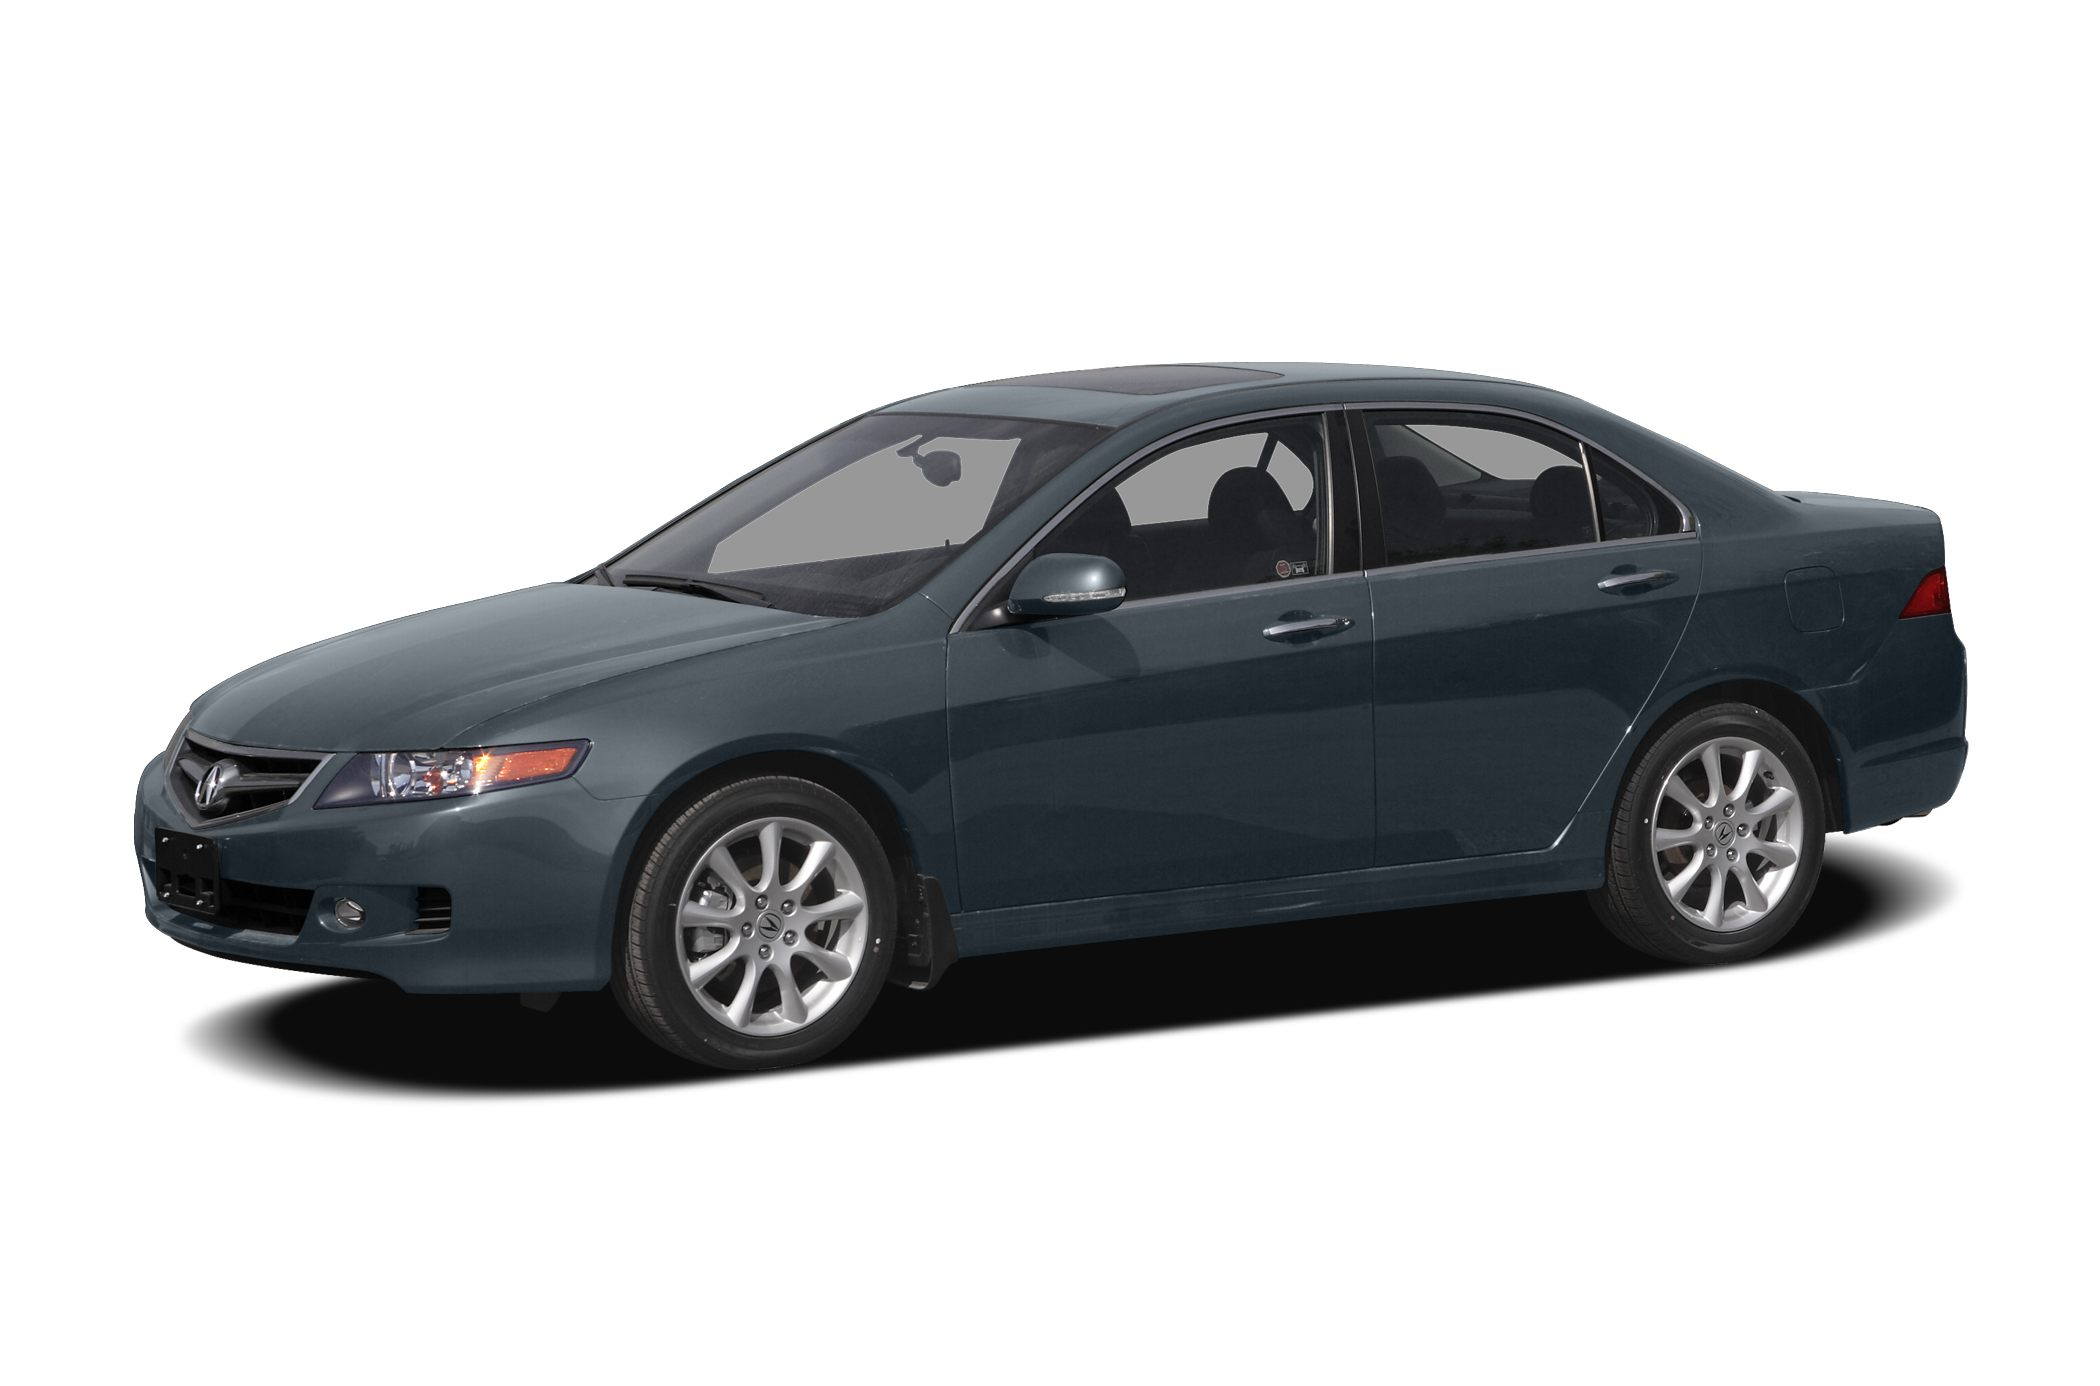 2006 Acura TSX Base Miles 142900Color Gray Stock A025542A VIN JH4CL96816C009768